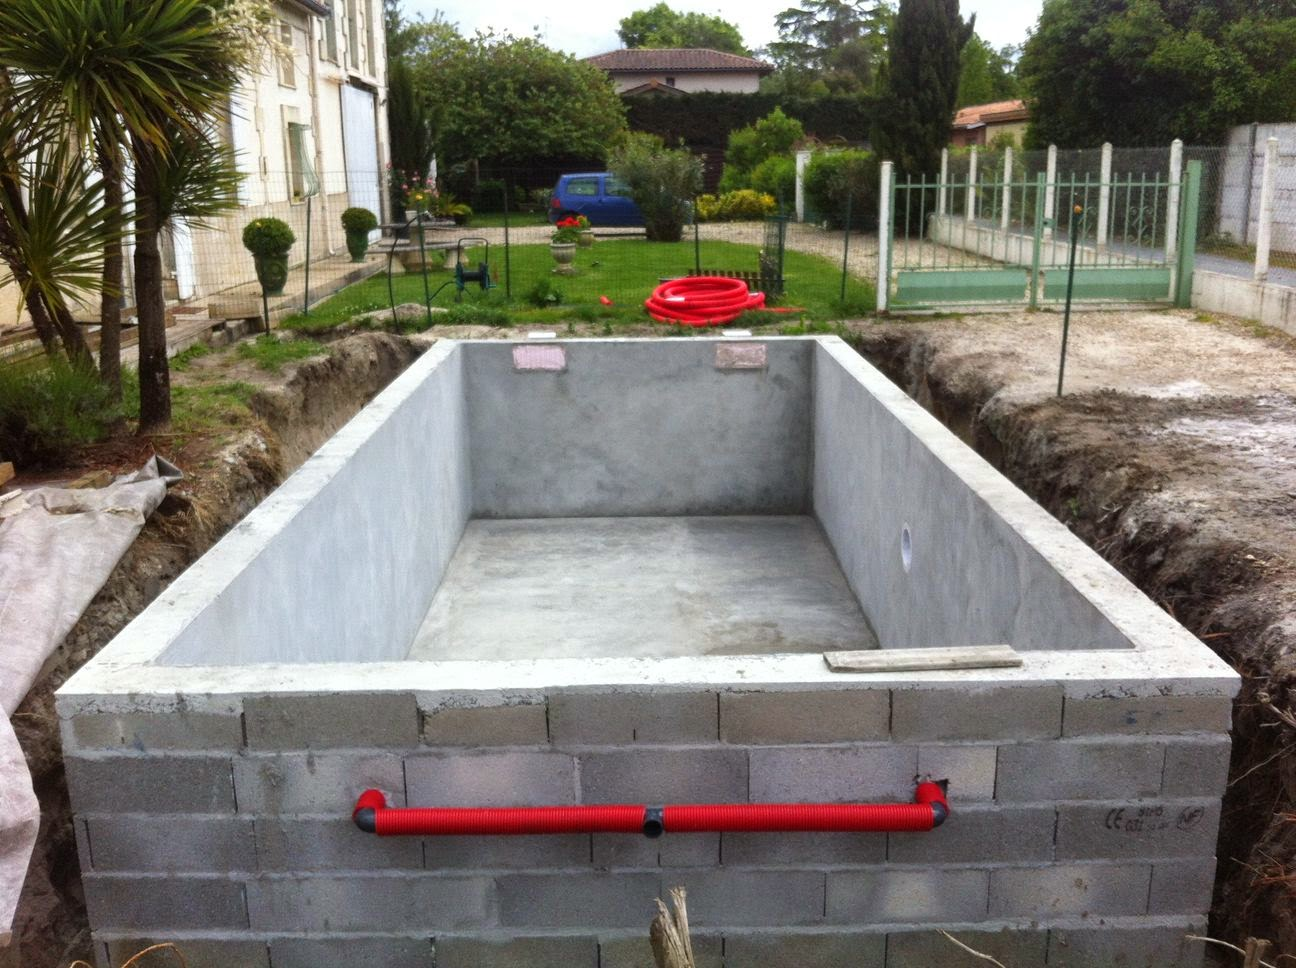 Projet tapes de construction d 39 une piscine en gironde for Construction piscine